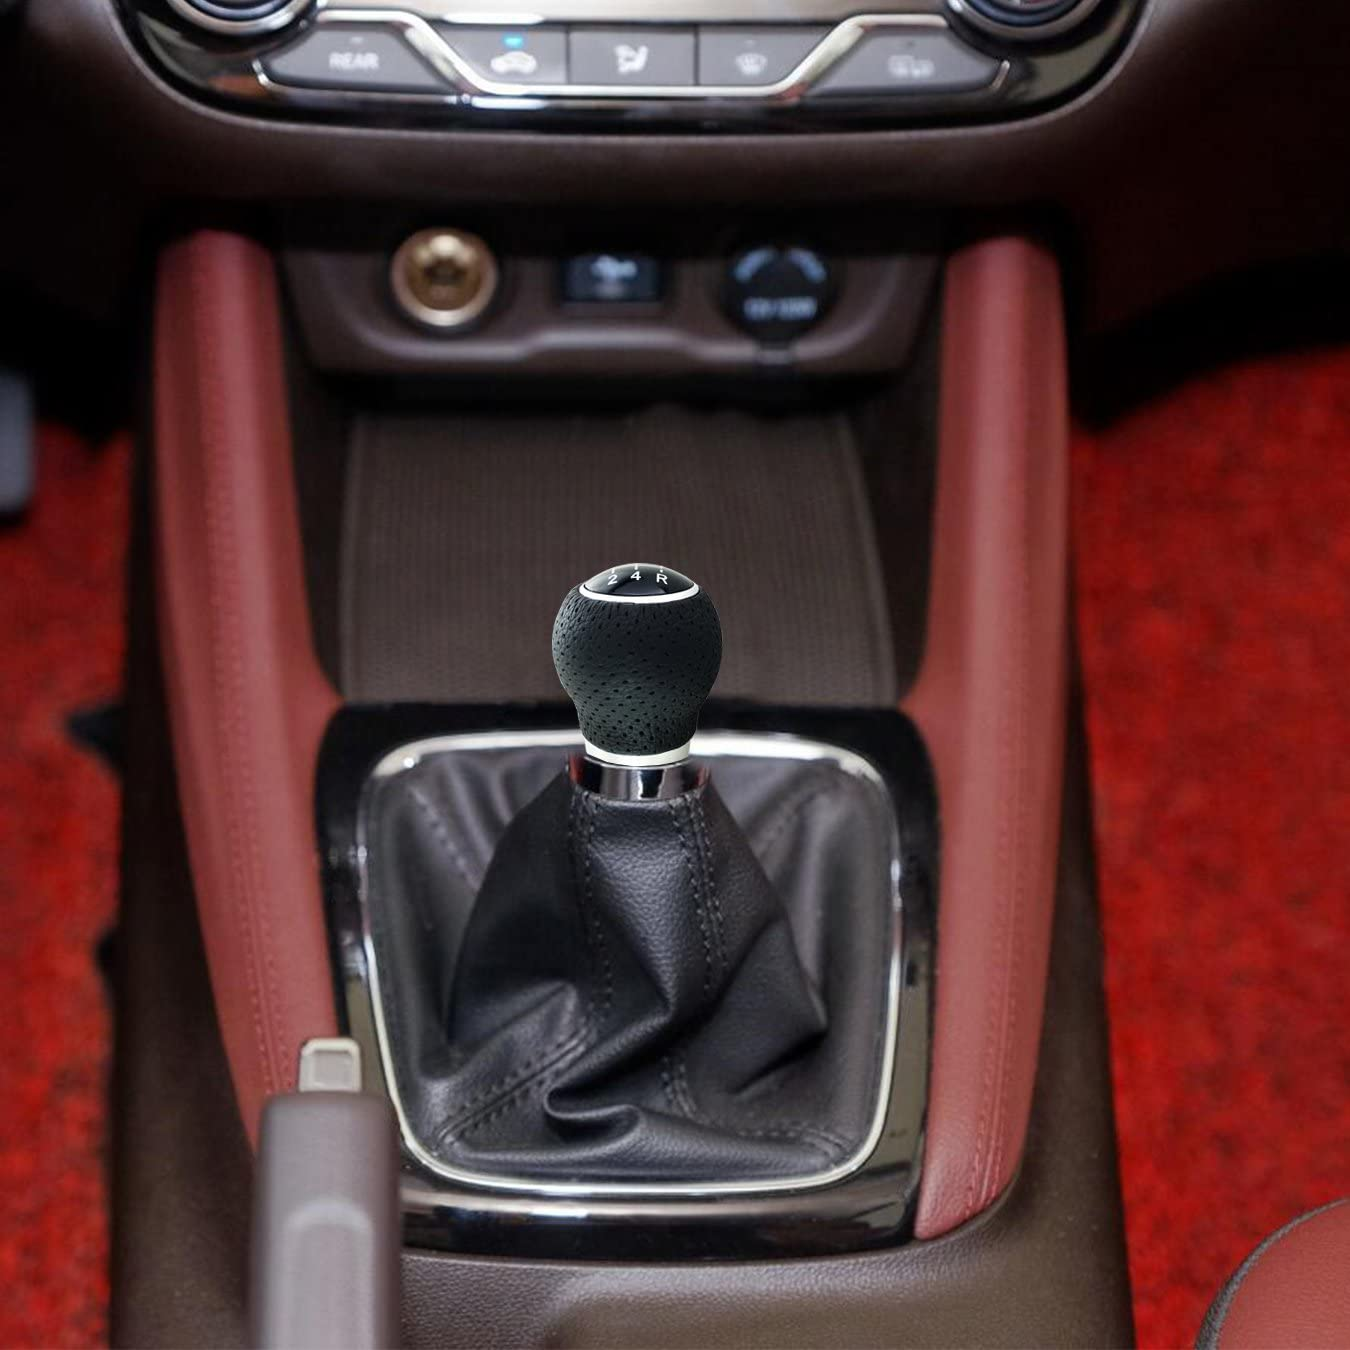 Arenbel 5-Speed Stick Shifter Knob Leather Shifting Shift Lever Head Replacement fit Most Manual Automatic Vehicles Black